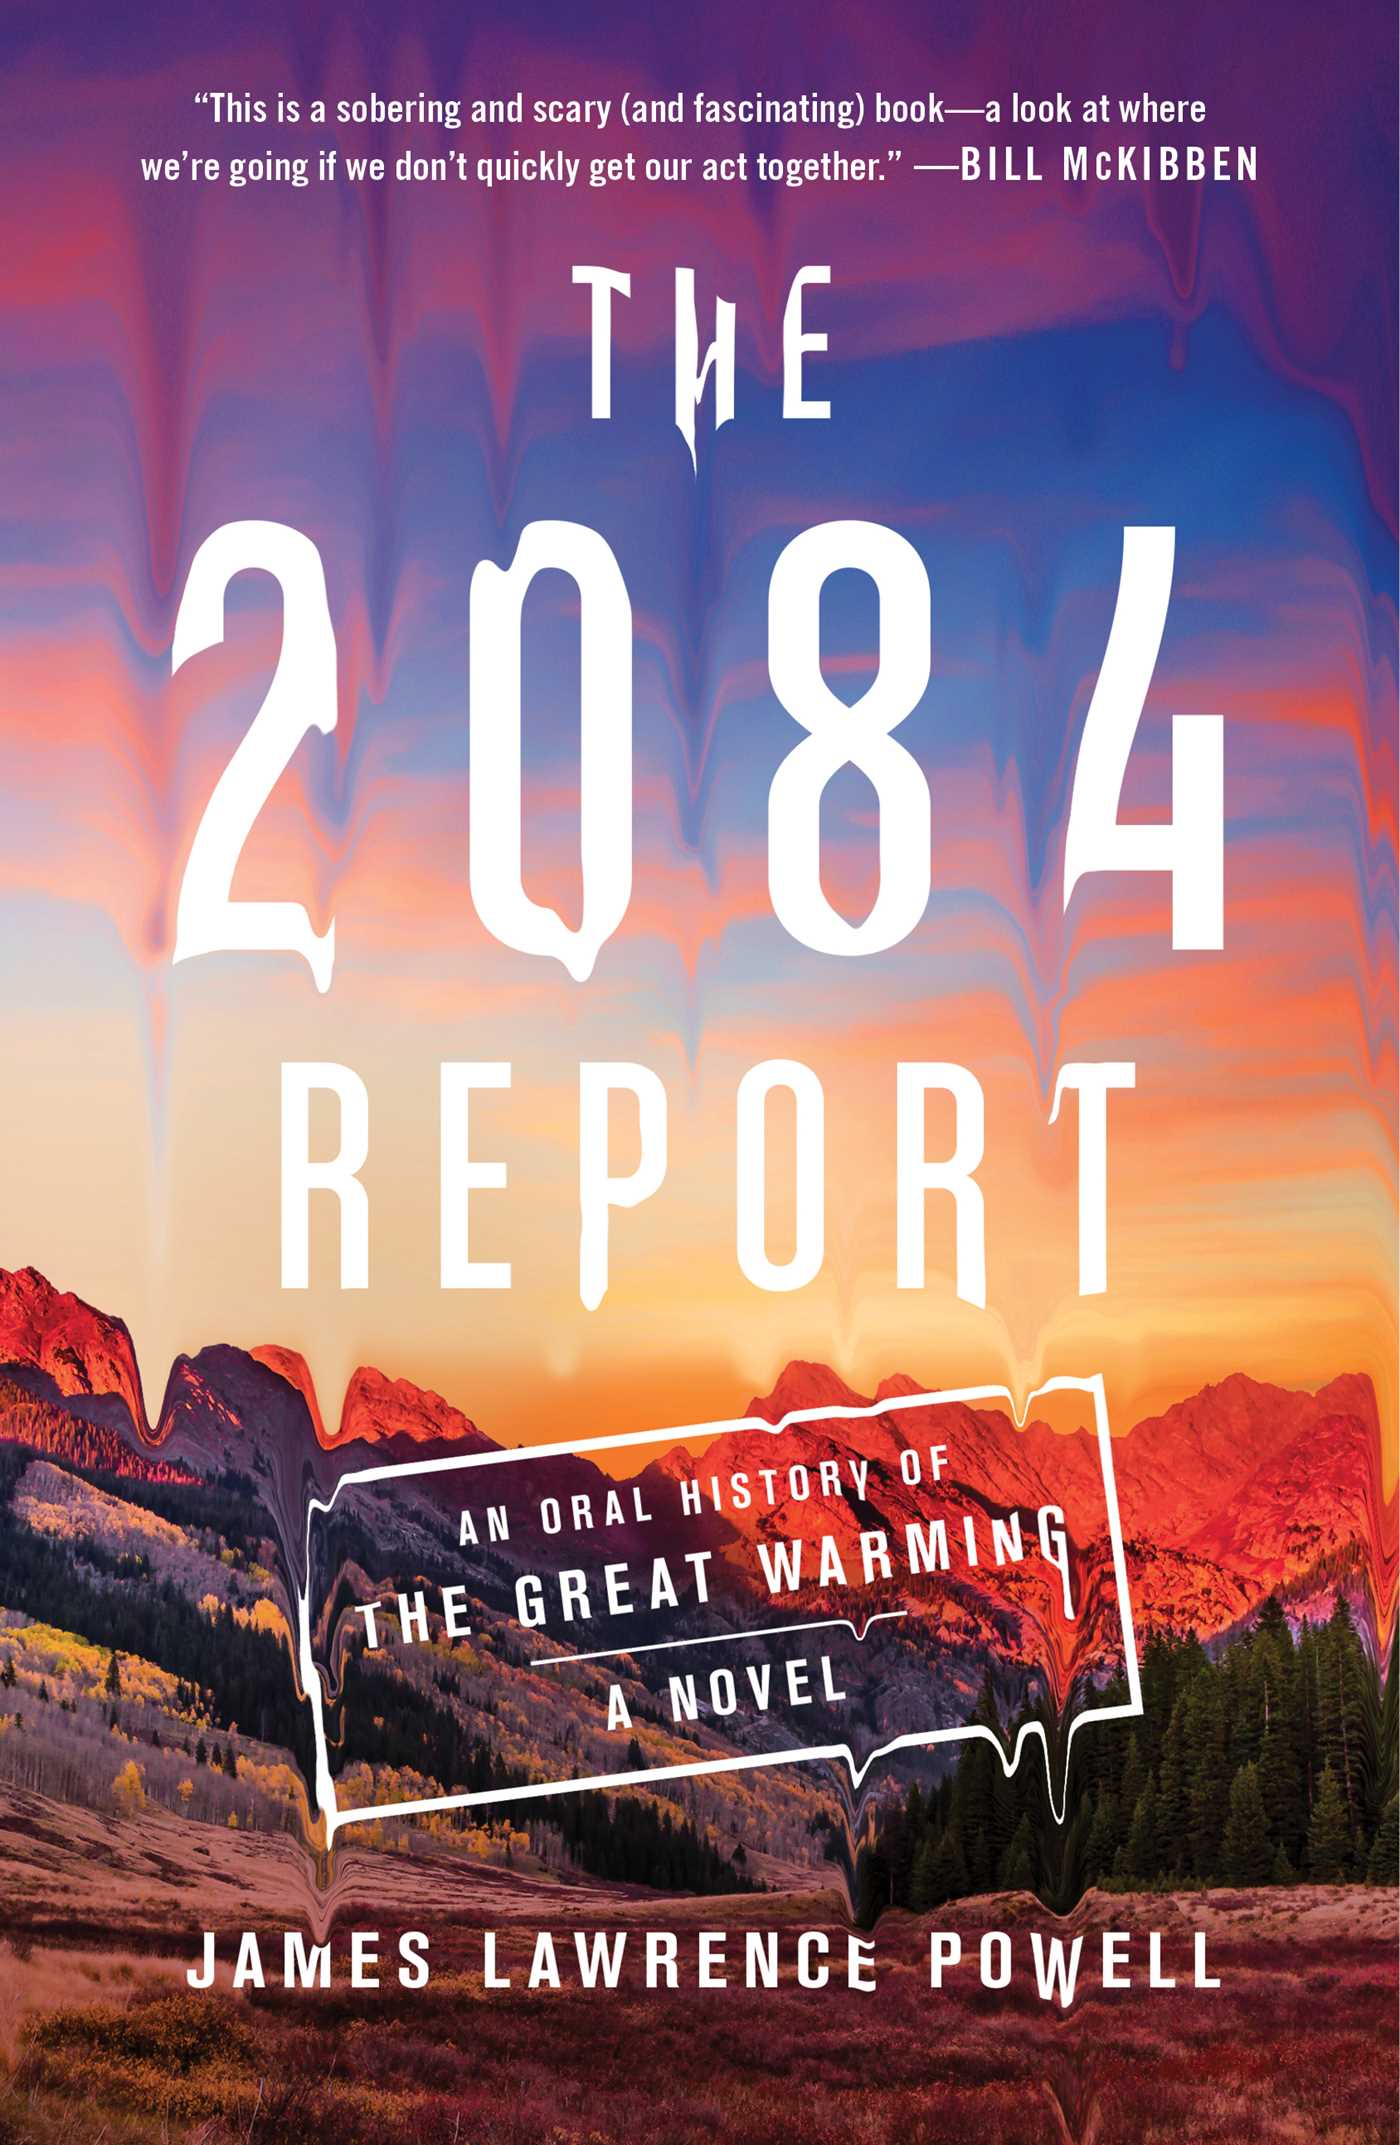 [PDF] [EPUB] The 2084 Report: An Oral History of the Great Warming Download by James Lawrence Powell